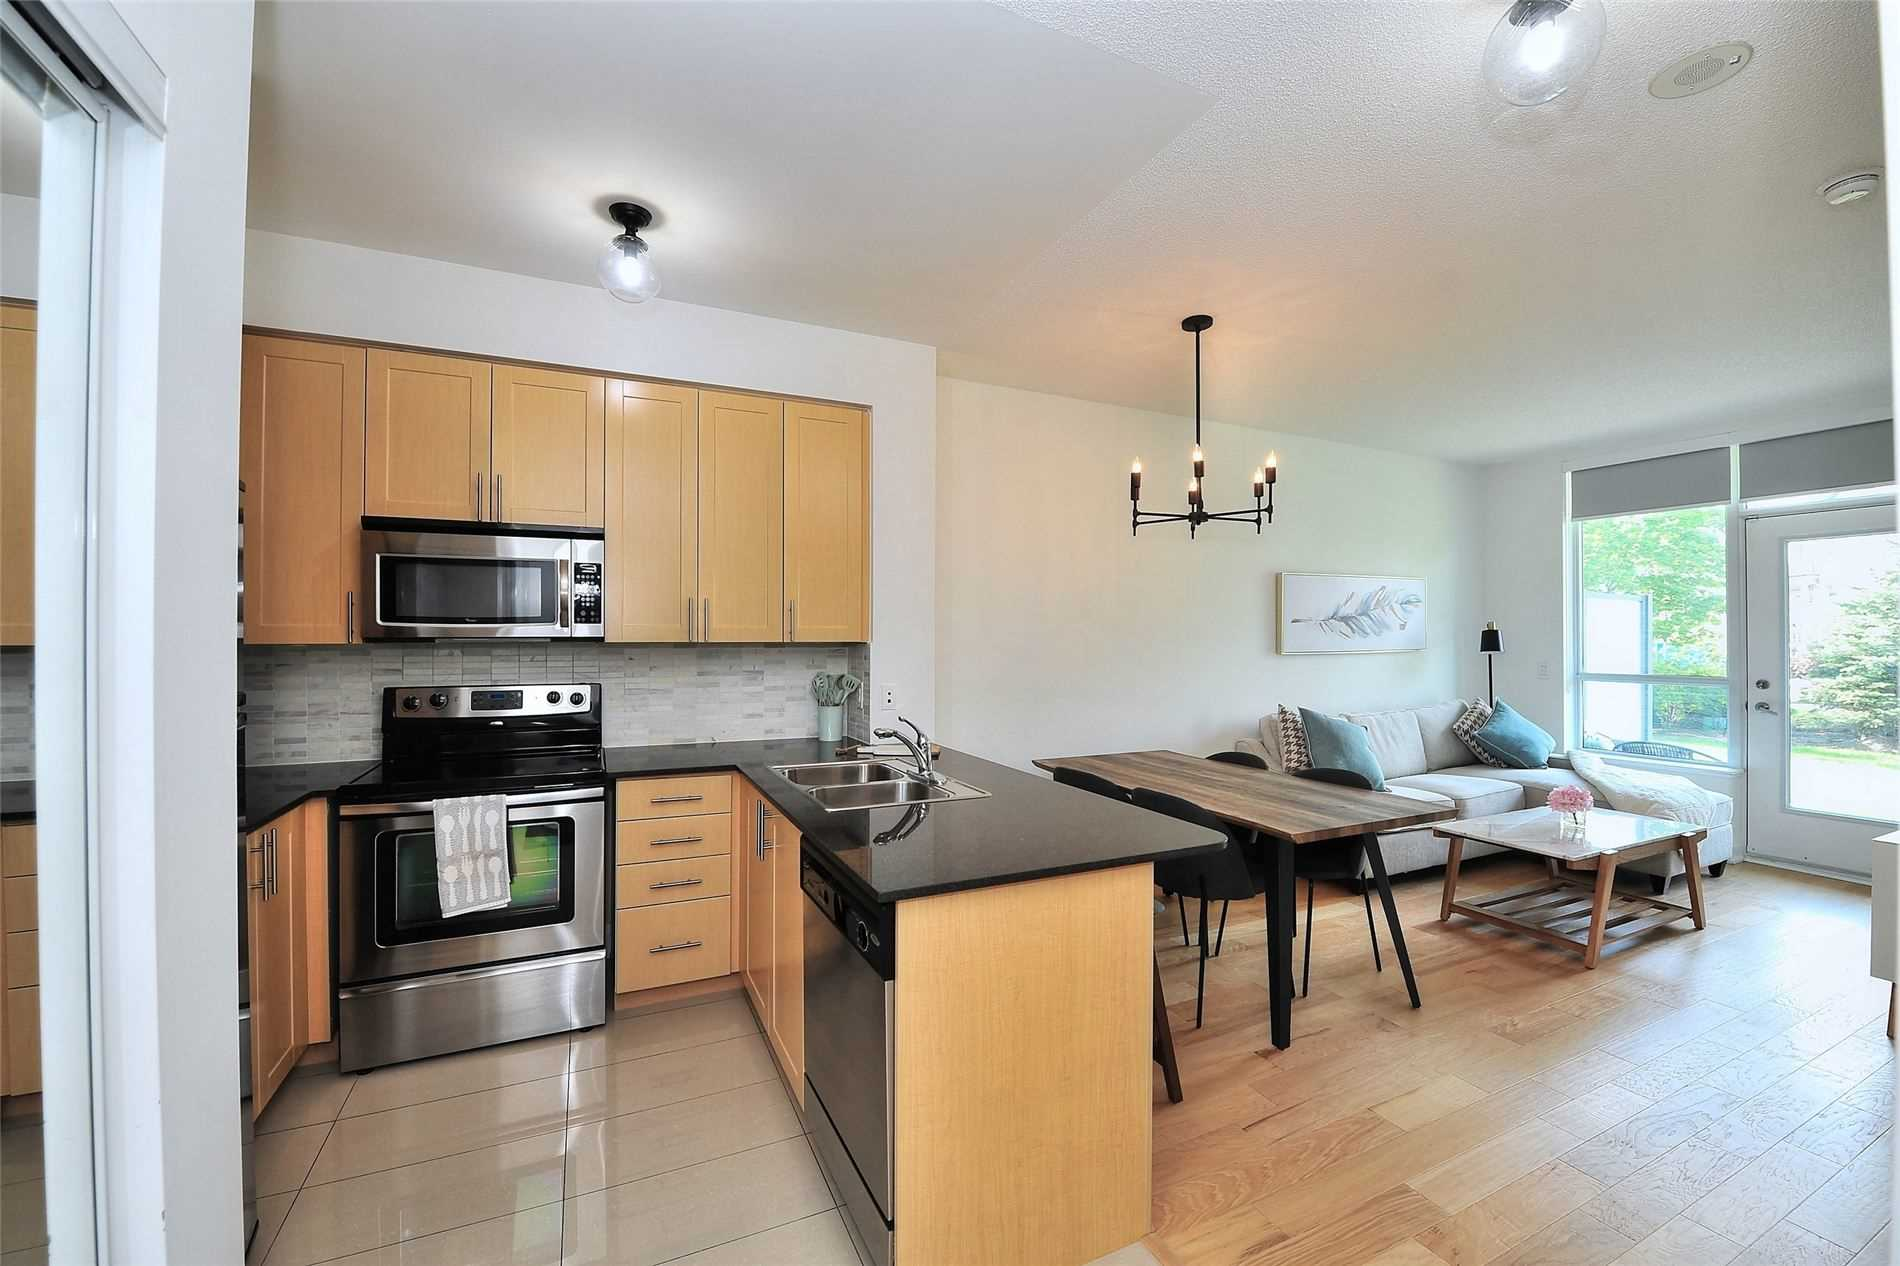 Image 7 of 30 showing inside of 1 Bedroom Condo Apt Apartment for Sale at 30 North Park Rd Unit# 101, Vaughan L4J0G6